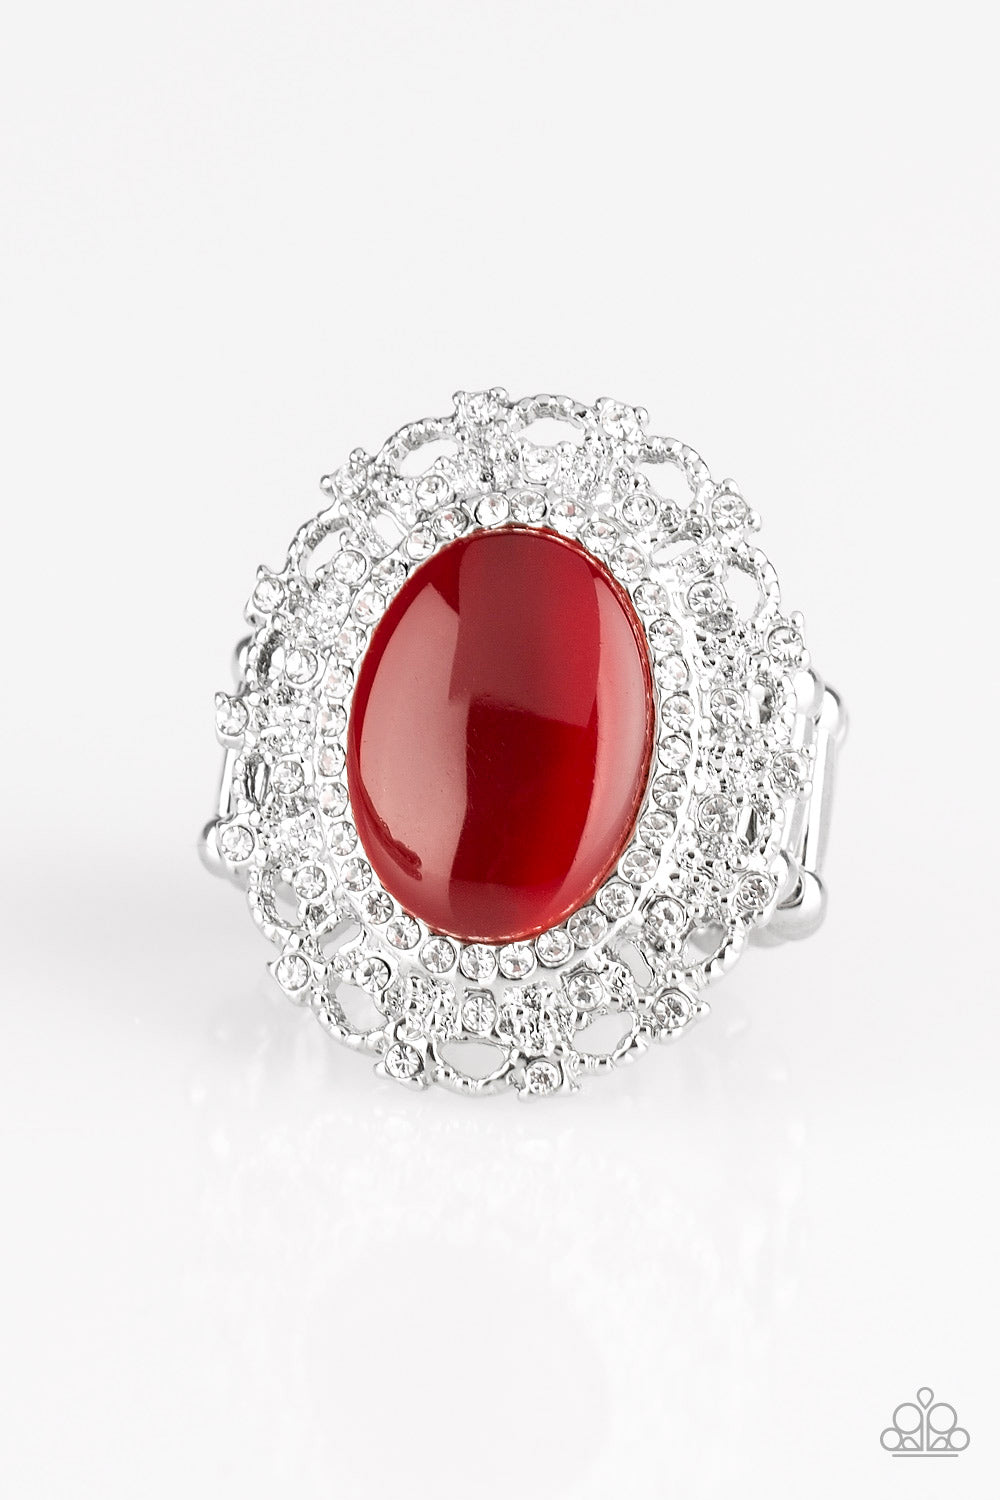 Paparazzi Accessories - BAROQUE The Spell - Red Ring - JMJ Jewelry Collection